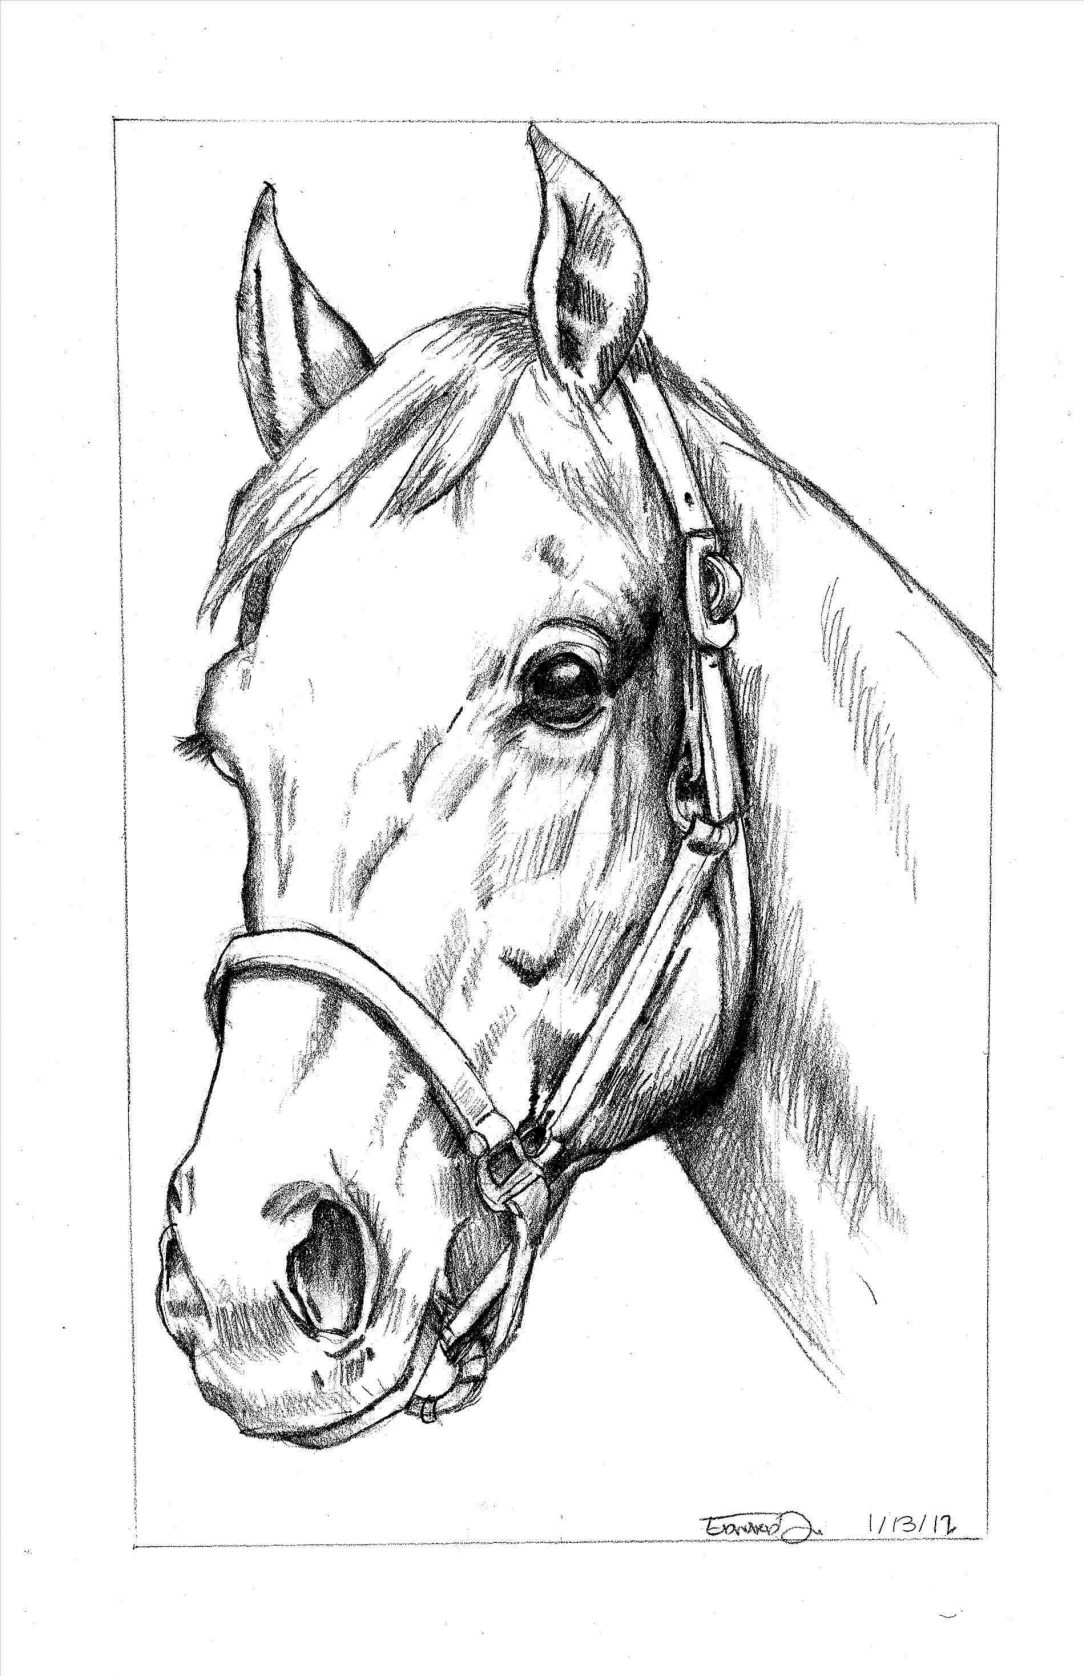 how to draw a horse standing up horses feeding drawing stock illustration illustration of up how draw horse standing a to